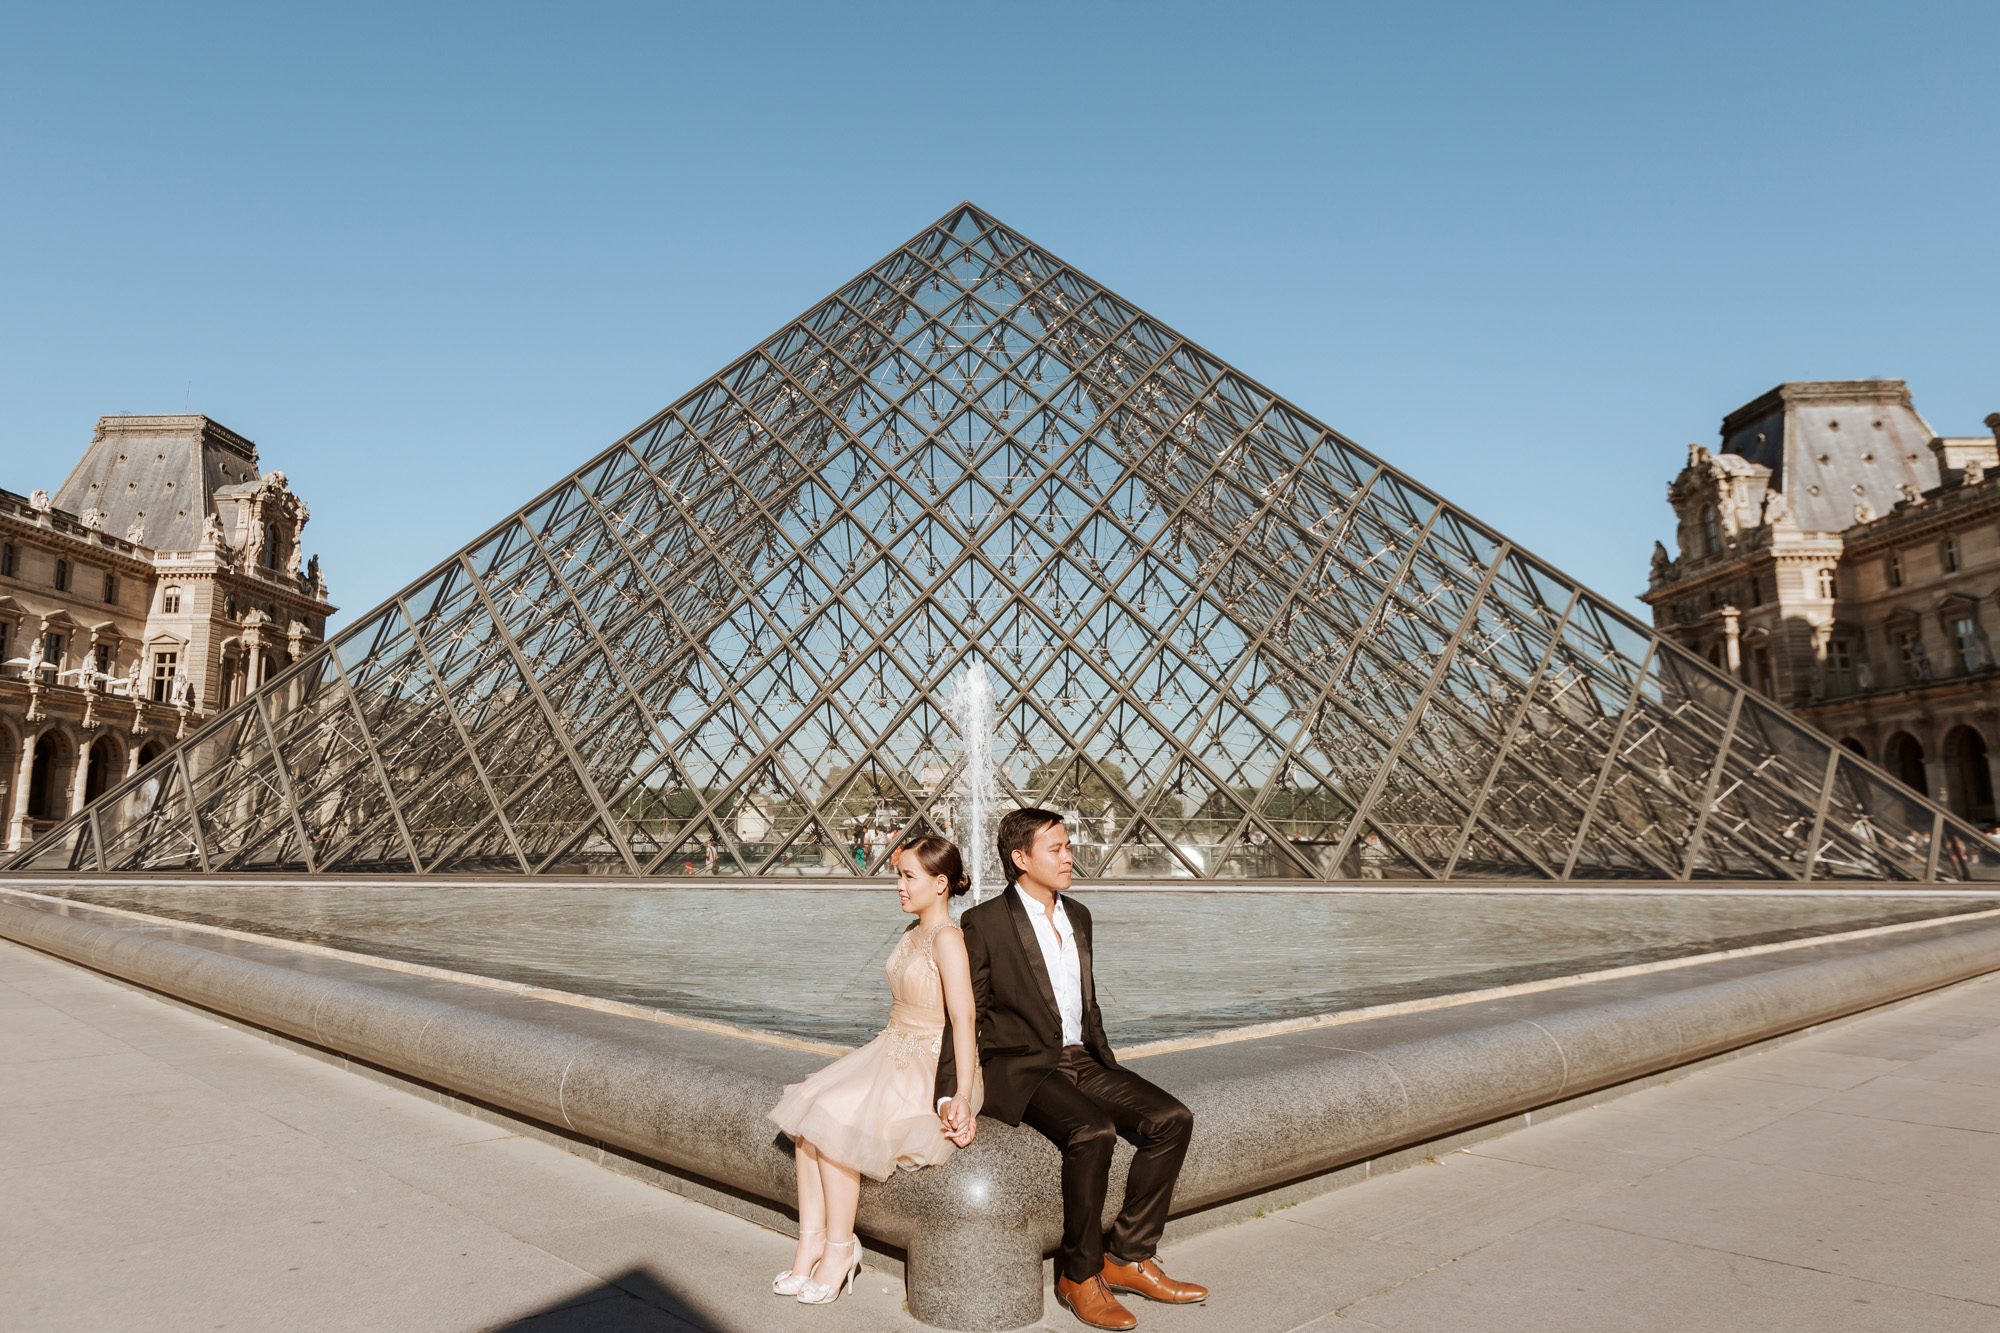 Pre-wedding couple portrait sitting by the Louvre Pyramid captured by Paris Photographer Federico Guendel